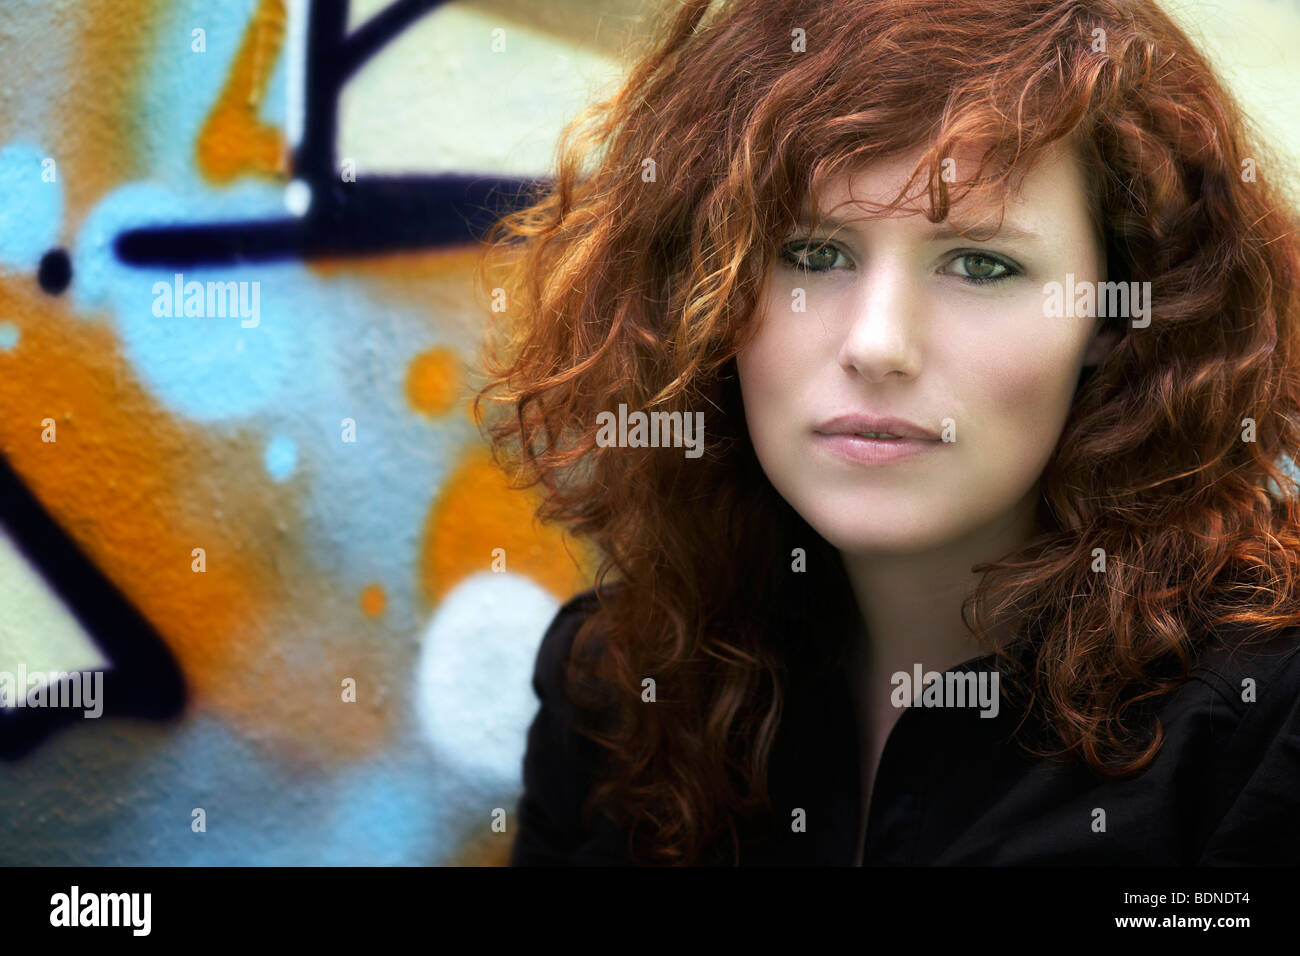 Portrait of a young red-haired woman, in front of a graffiti-sprayed wall - Stock Image